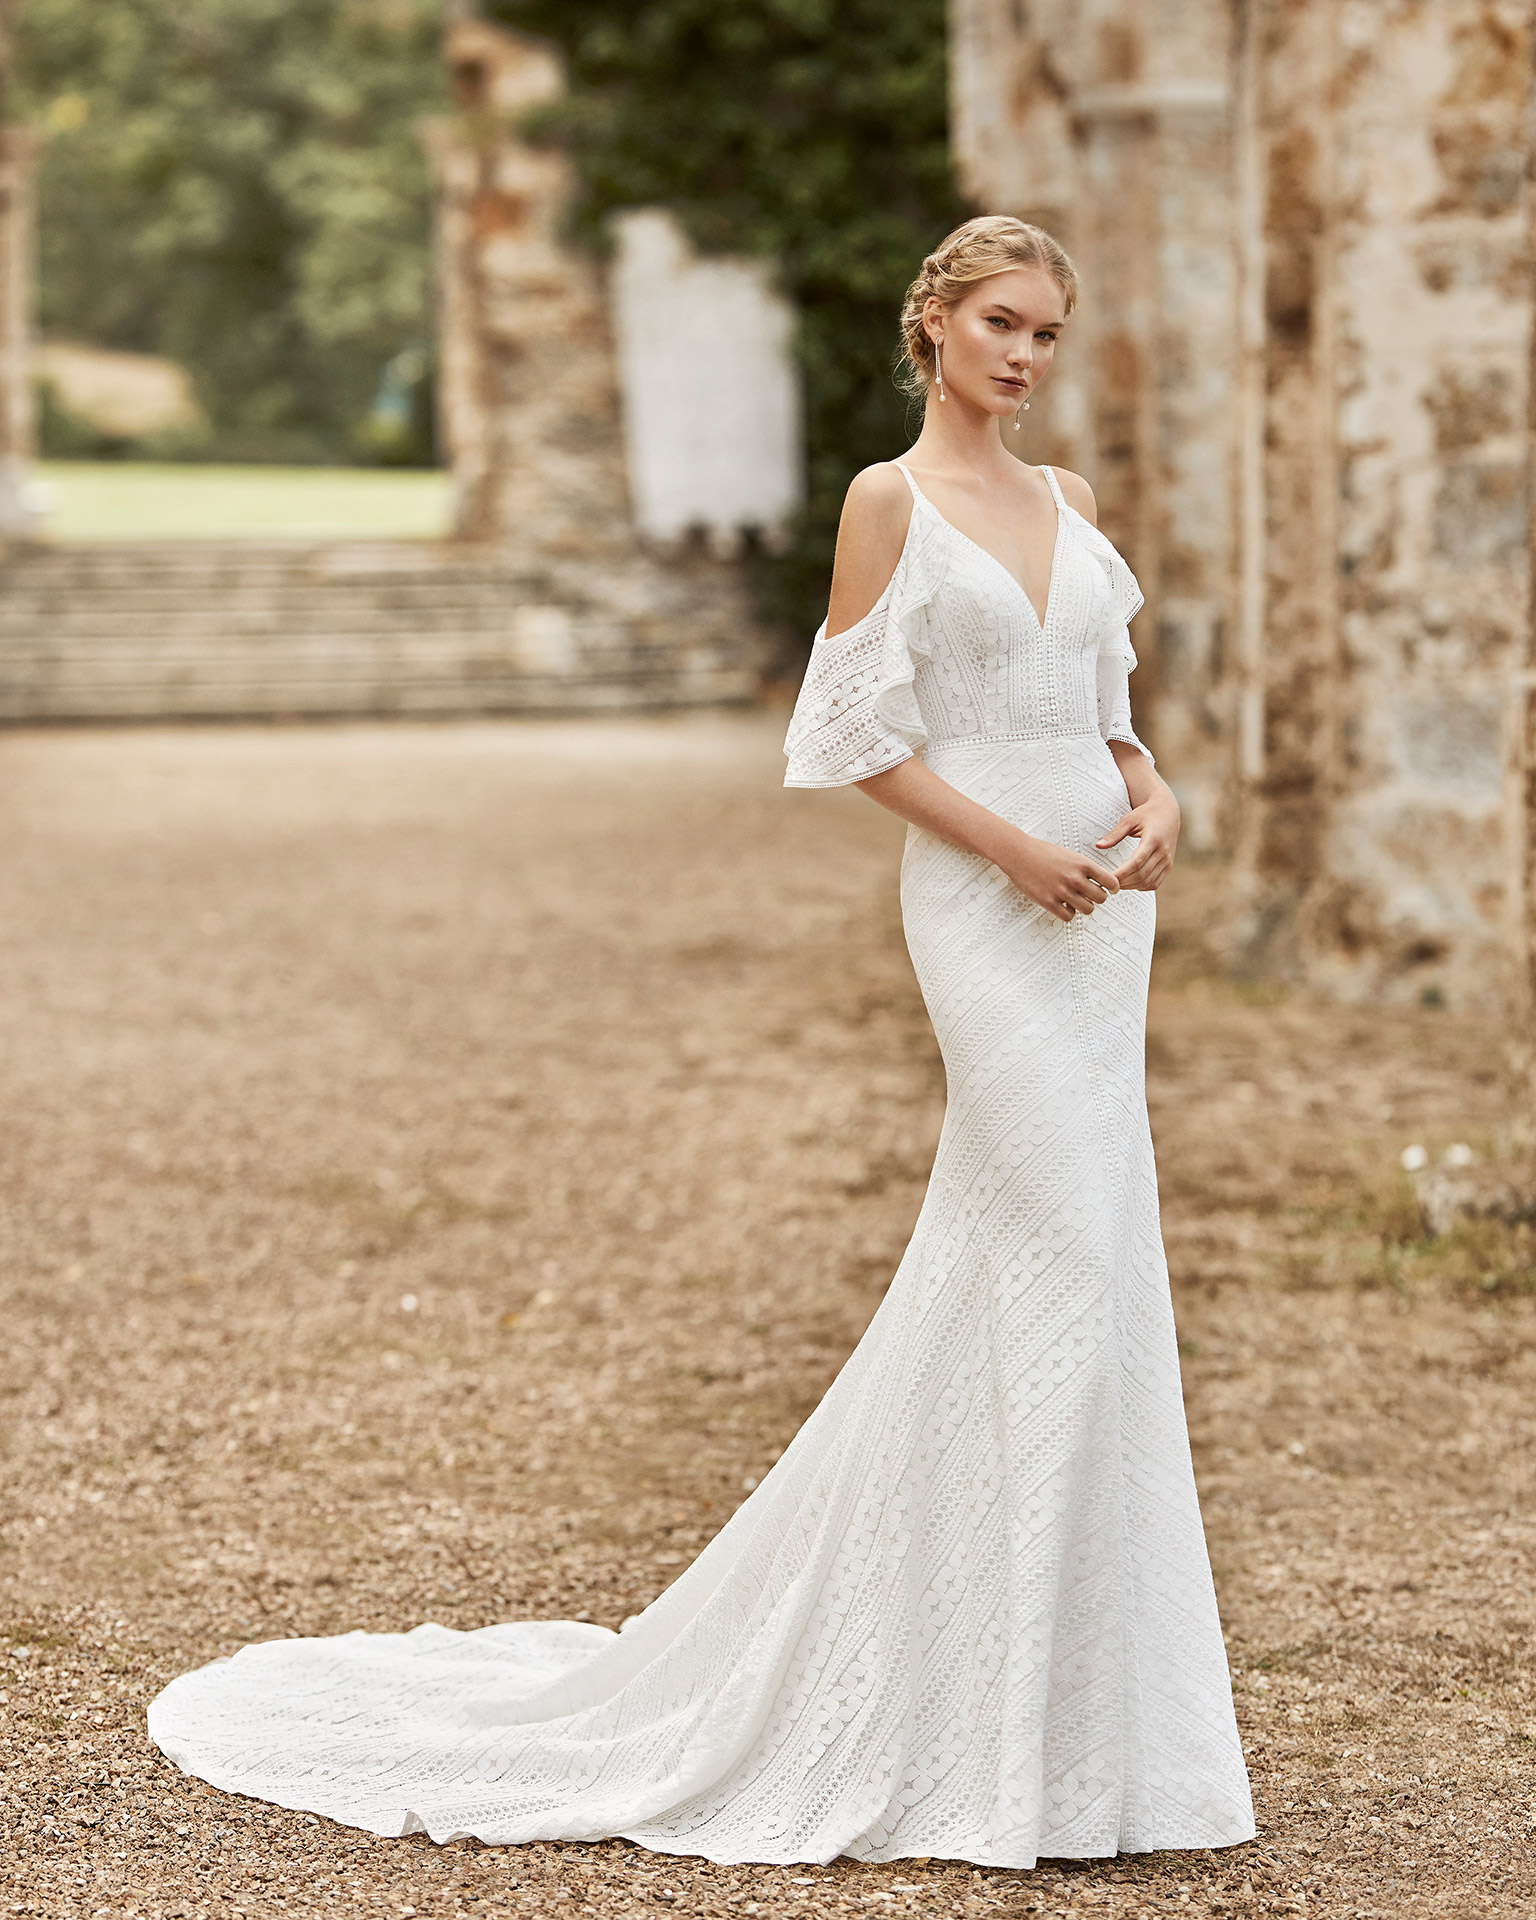 Lace wedding dress. V-neckline, off-the-shoulder sleeves in lace with shoulder straps and low V-back. 2021 ALMANOVIA Collection.